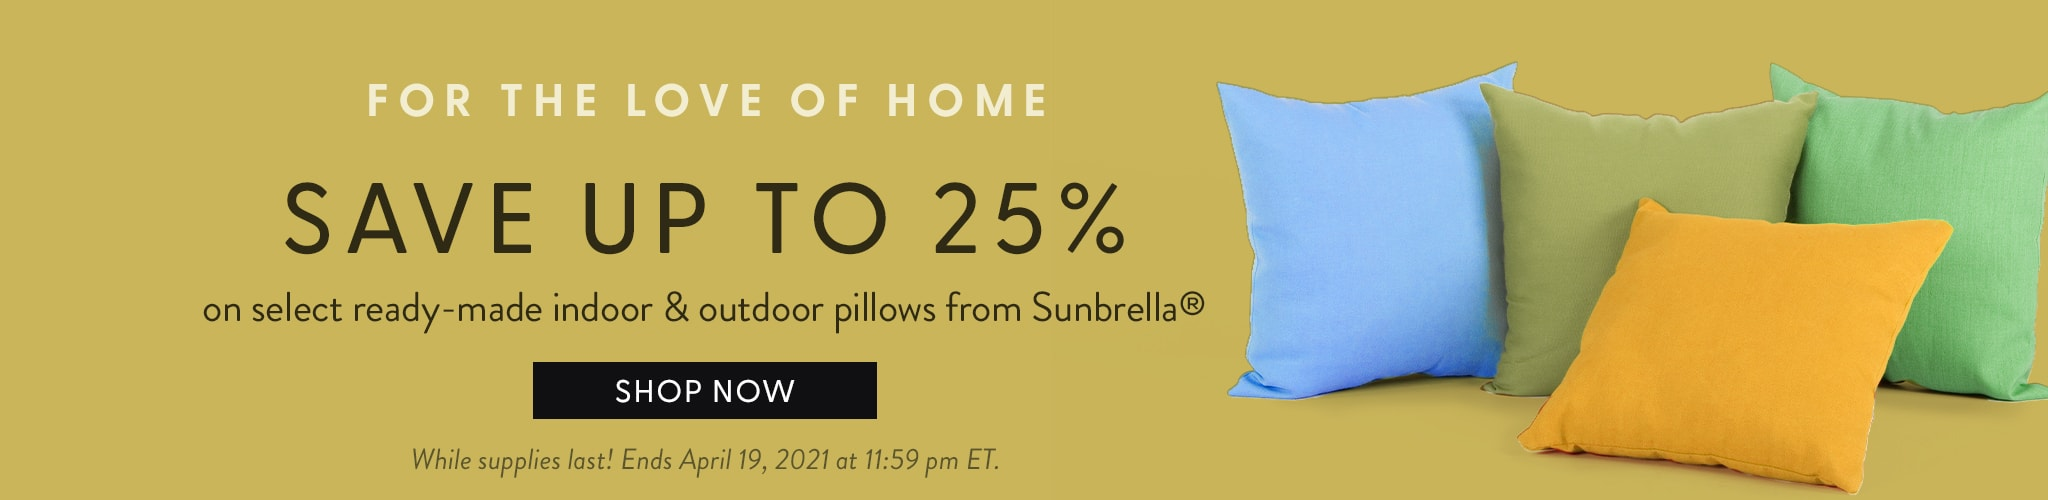 For the love of home. Save up to 25% on select ready-made indoor & outdoor pillows from Sunbrella